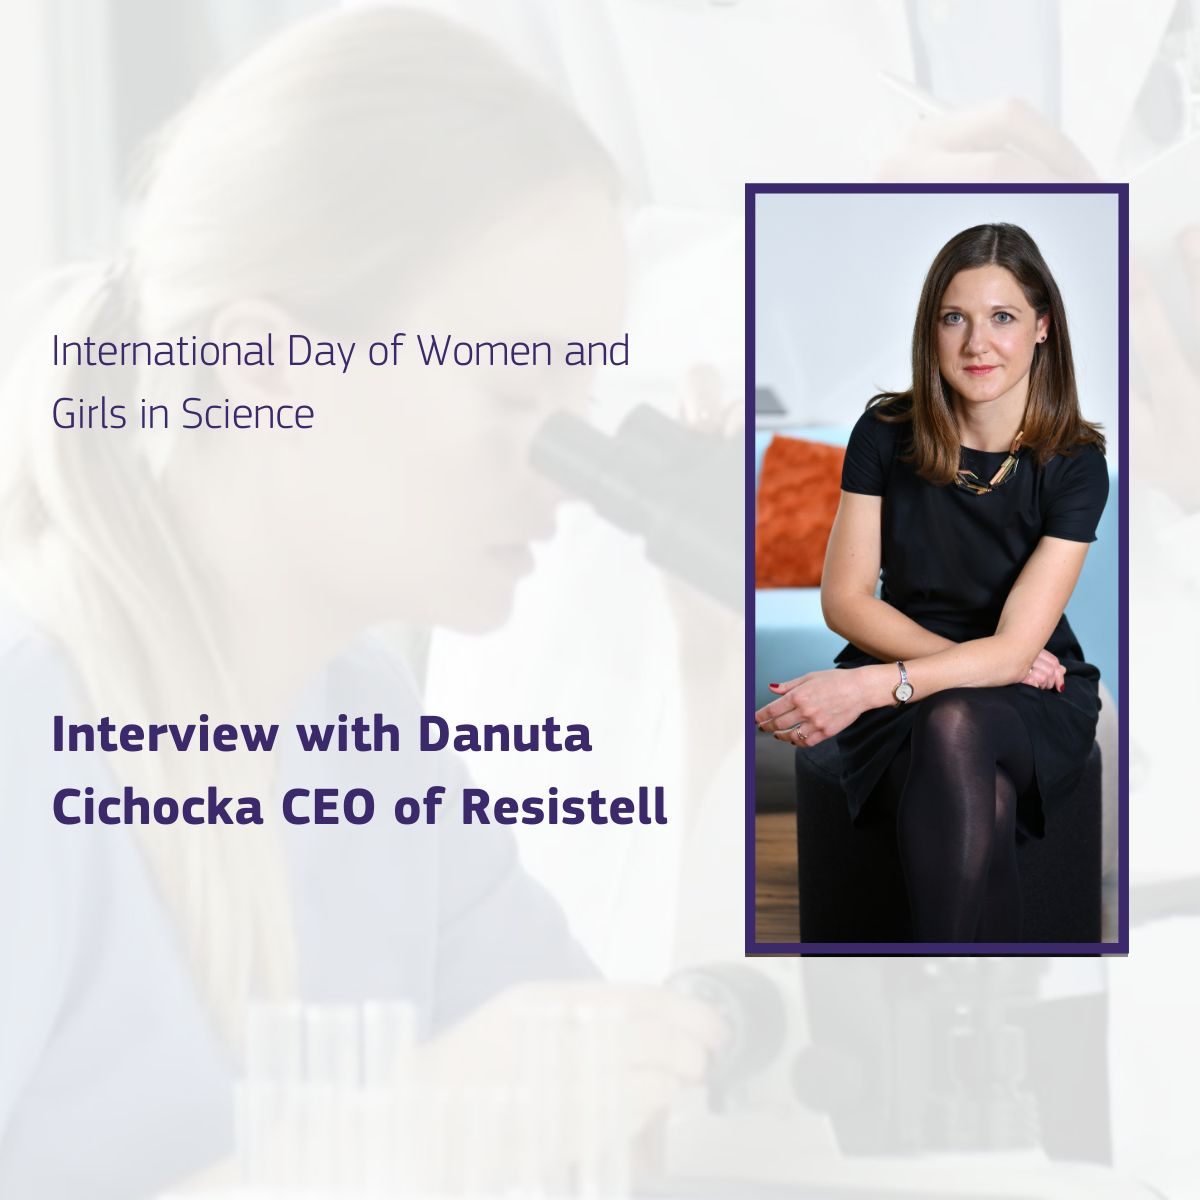 International Day of Women and Girls in Science - European Innovation Council interview with Danuta Cichocka